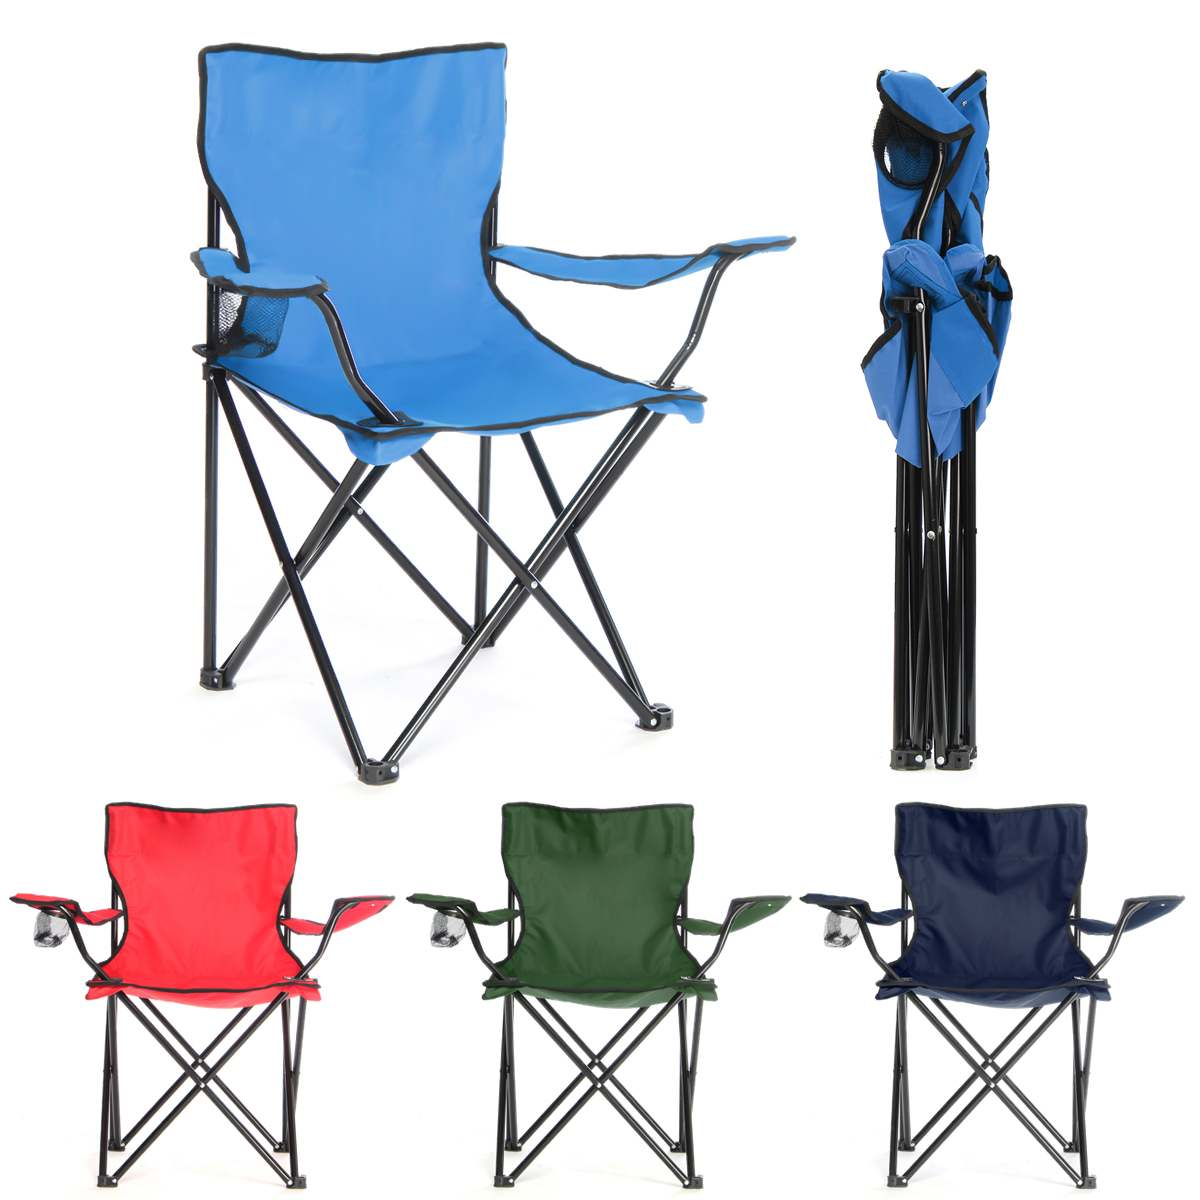 US $23.23 18% OFF 50x50x80cm Light Folding Camping Fishing Chair Seat  Portable Beach Garden Outdoor Camping Leisure Picnic Beach Chair Tool  Set-in ...